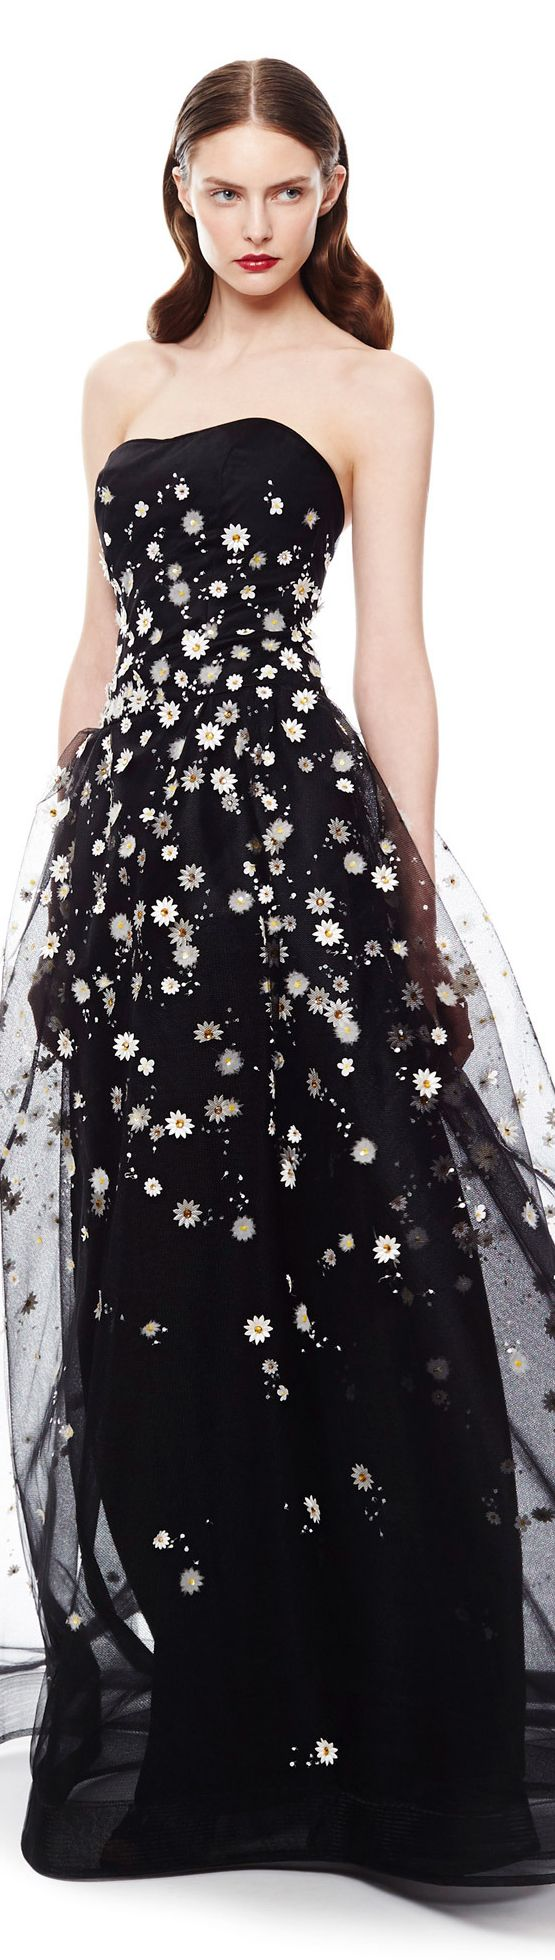 Carolina Hererra | Resort 2015 // Black is not normally your thing, but I liked the flowery nature of it, even if it's a bit stark.